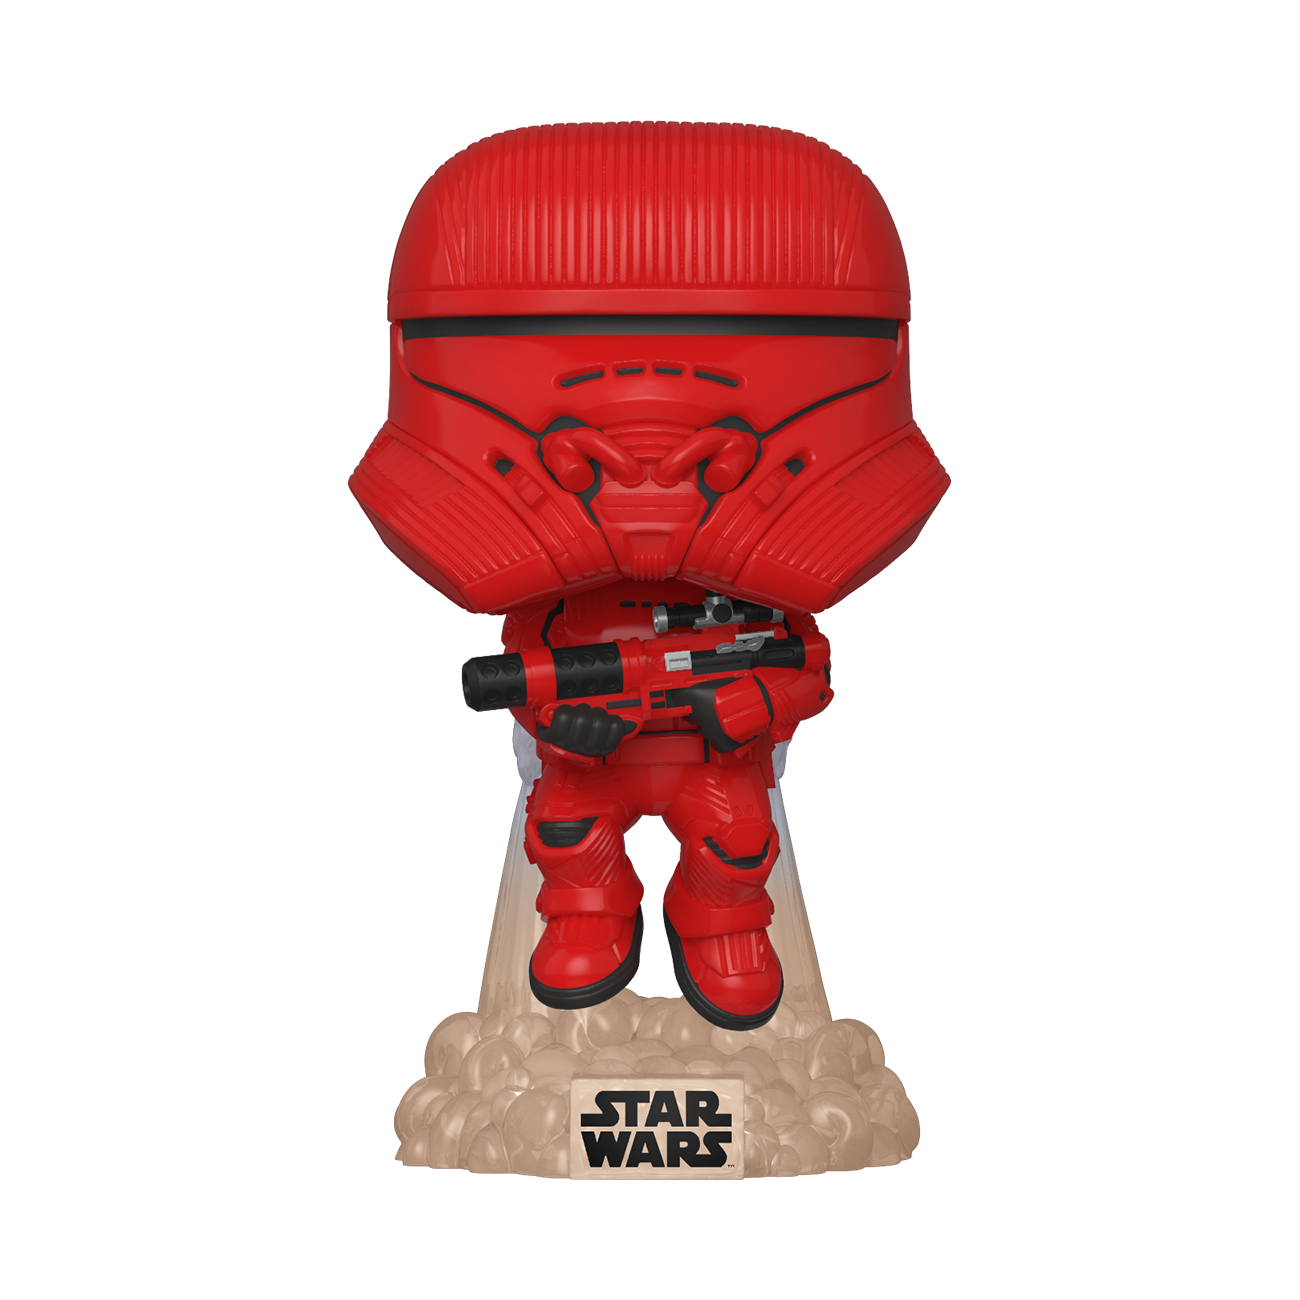 Funko Star Wars - Sith Jet Trooper Summer Convention 2020 Exclusive Pop! Vinyl Figure